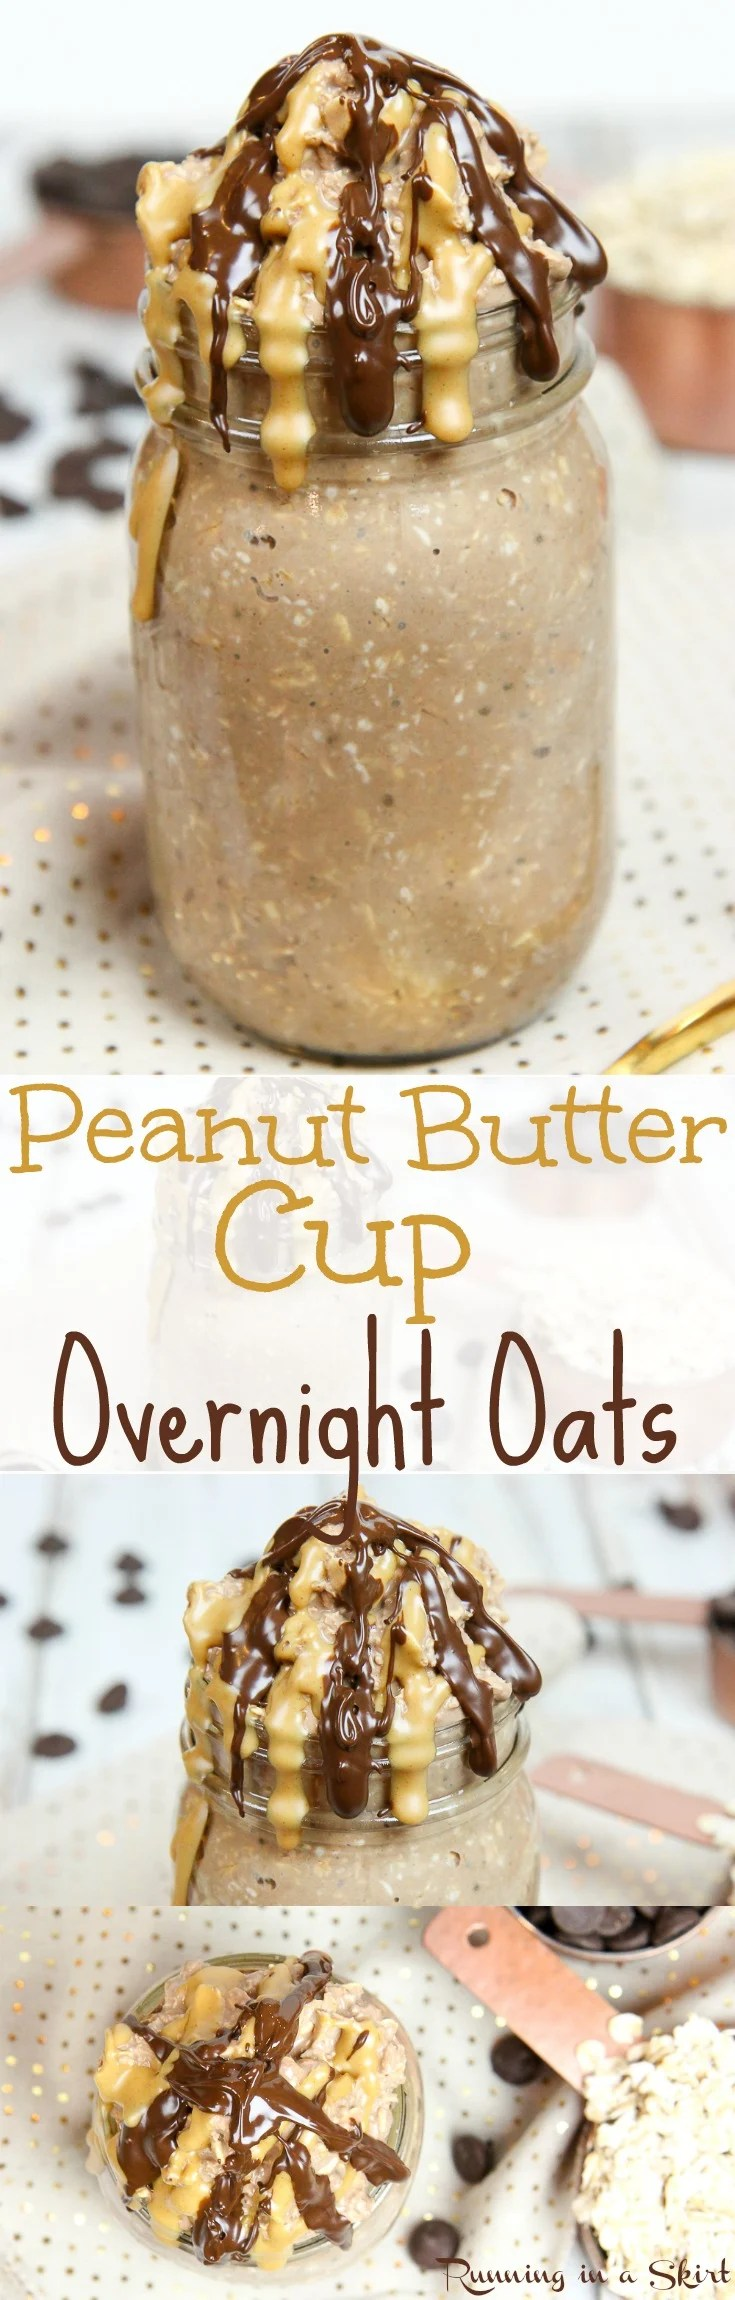 Healthy Peanut Butter Cup Overnight Oats recipe / Running in a Skirt